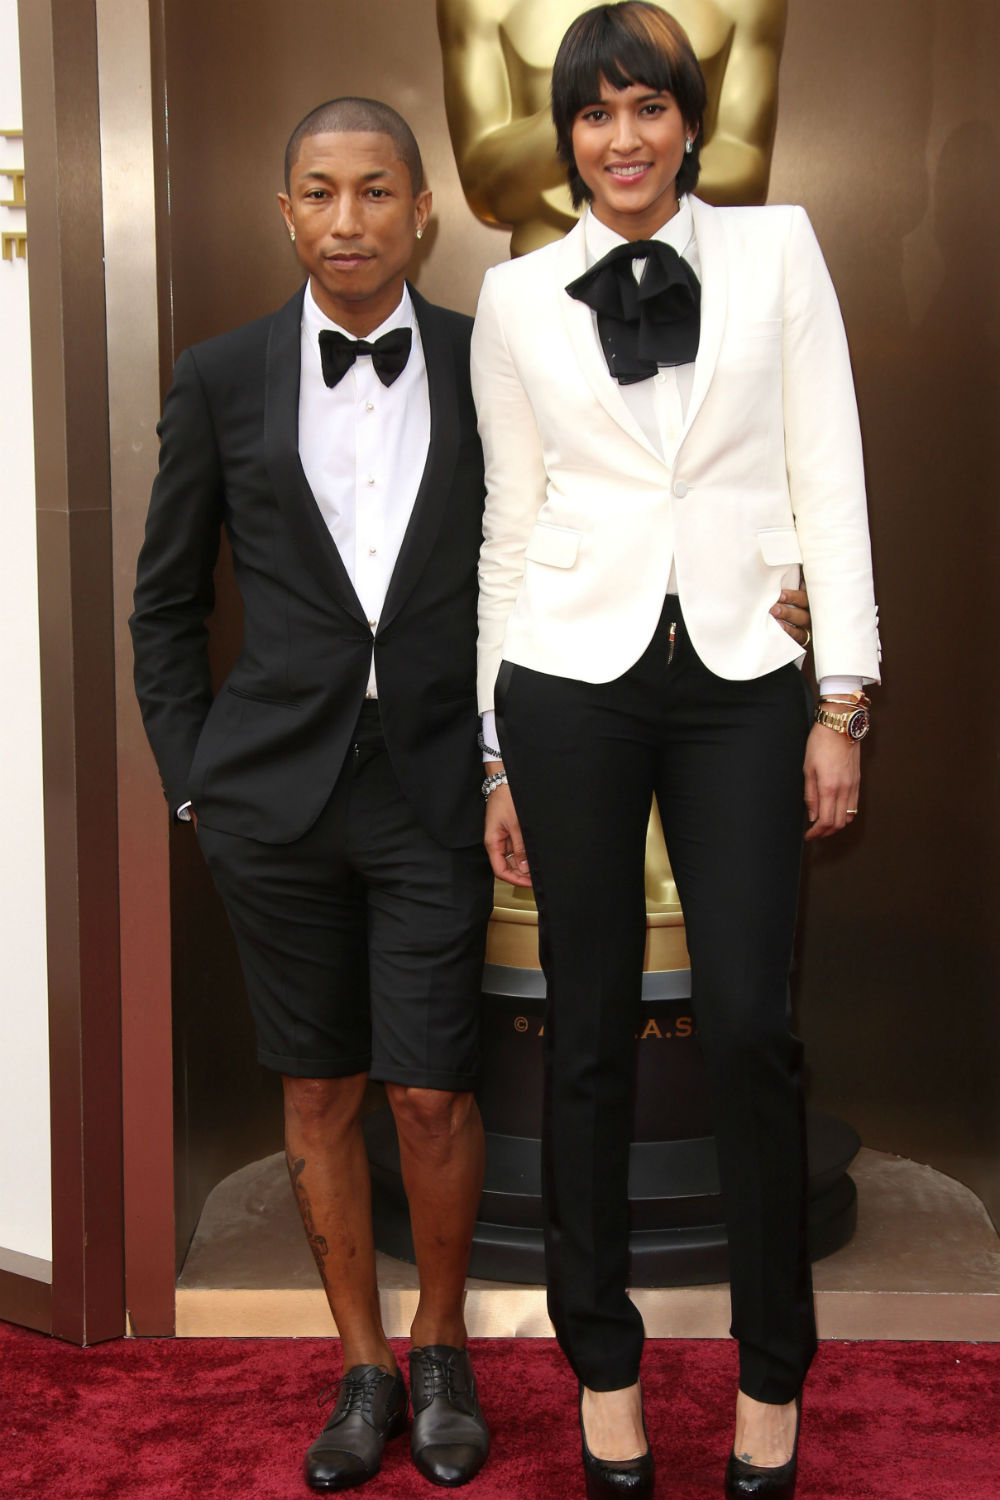 Pharrell Wore Tuxedo Shorts To The Oscars